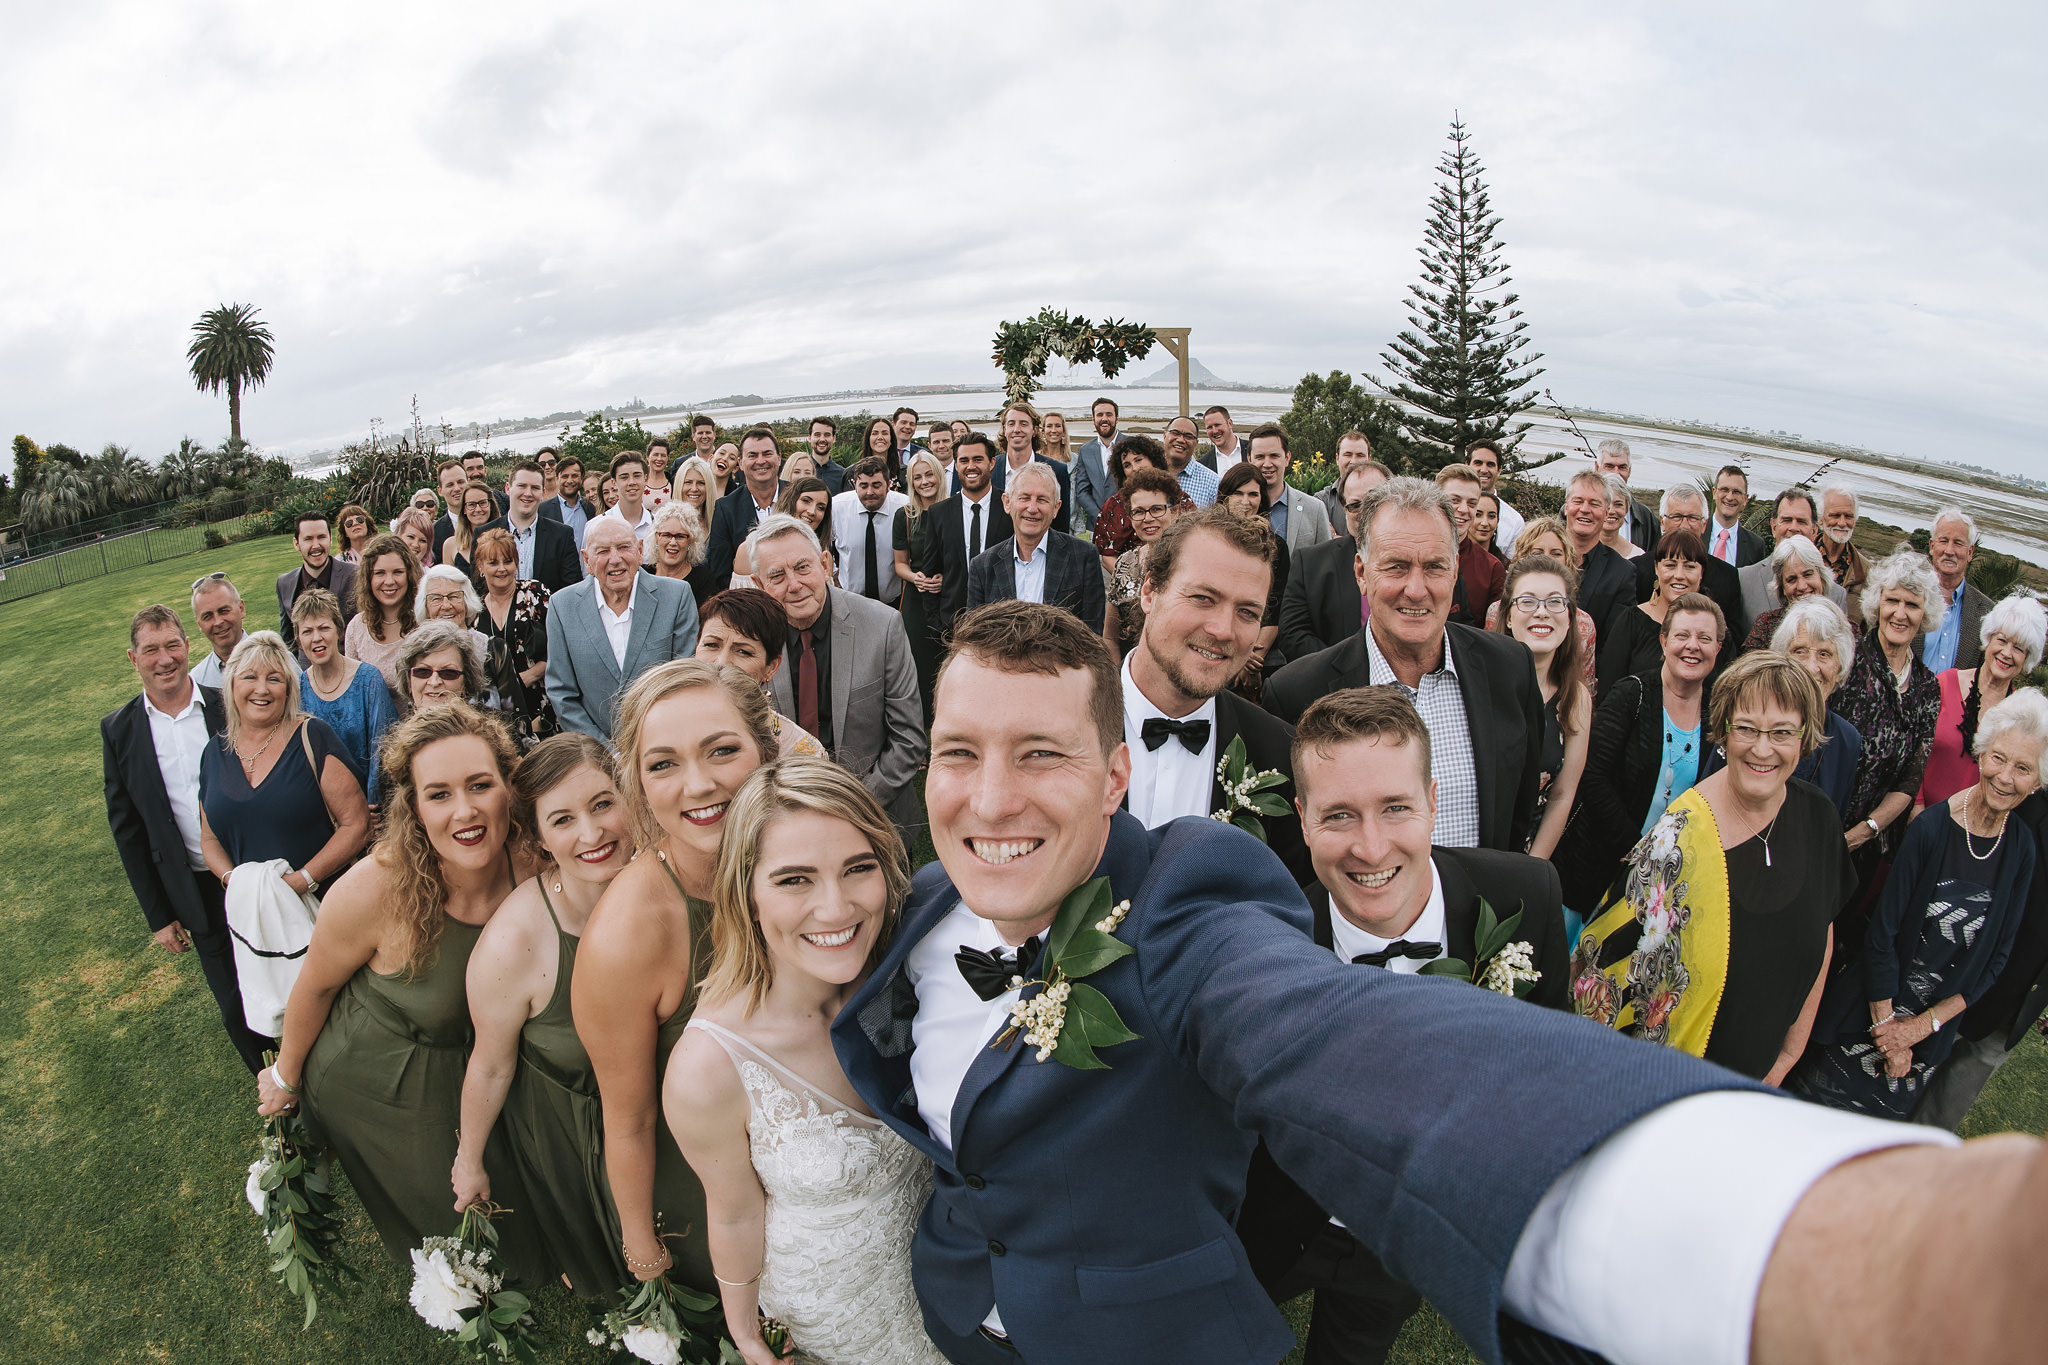 newfound-s-a-tauranga-new-zealand-wedding-photography-537